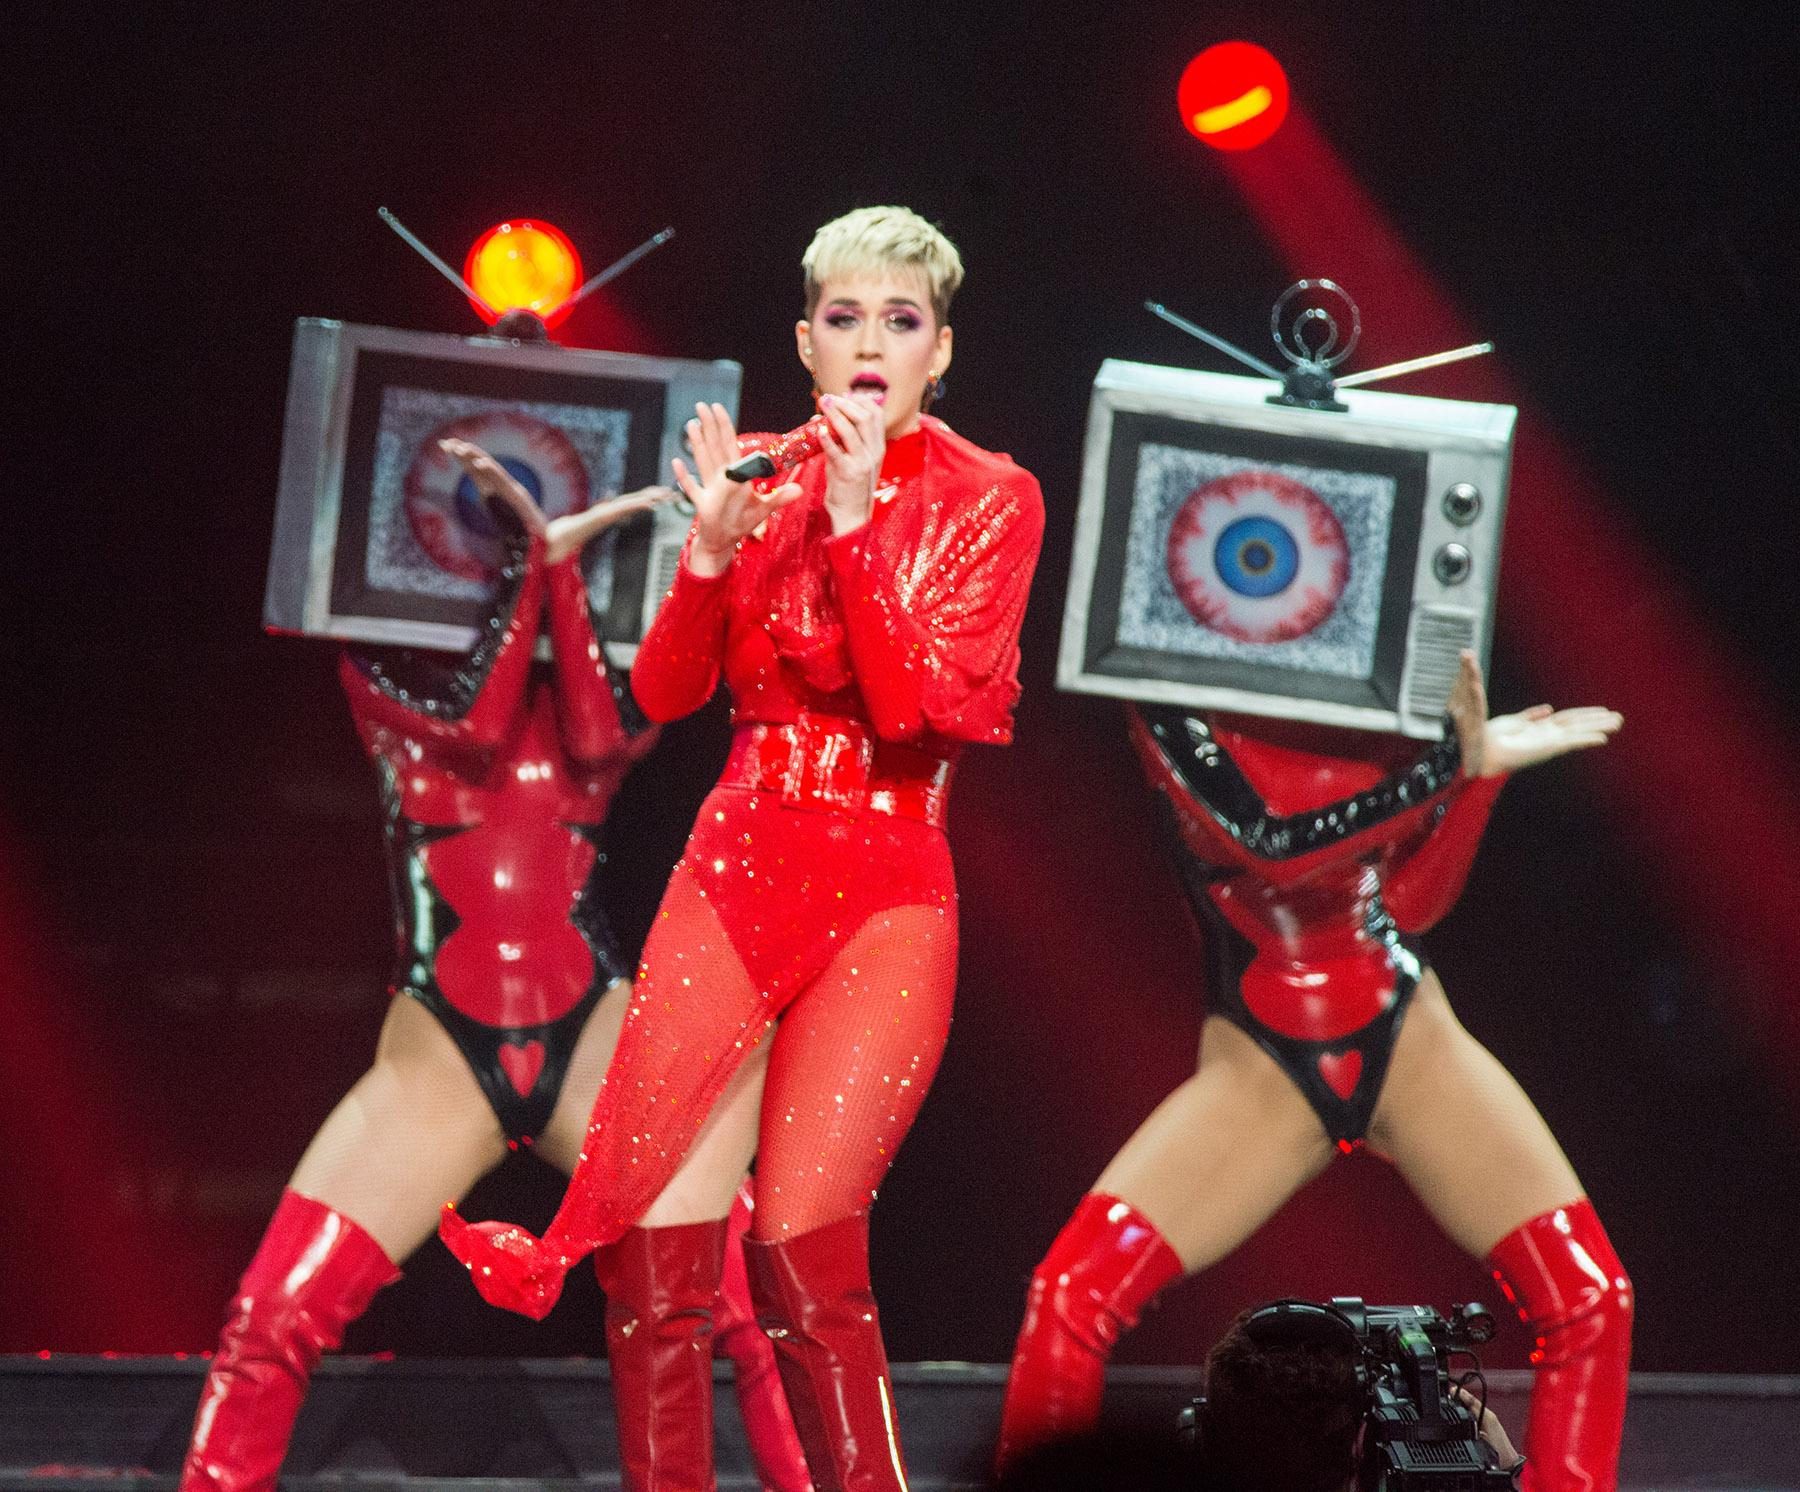 Pop sensation Katy Perry dazzled fans of all ages Friday night with a stunning performance at Portland's Moda Center as part of her worldwide 'Witness' tour. (KATU photo by Tristan Fortsch on February 2, 2018)